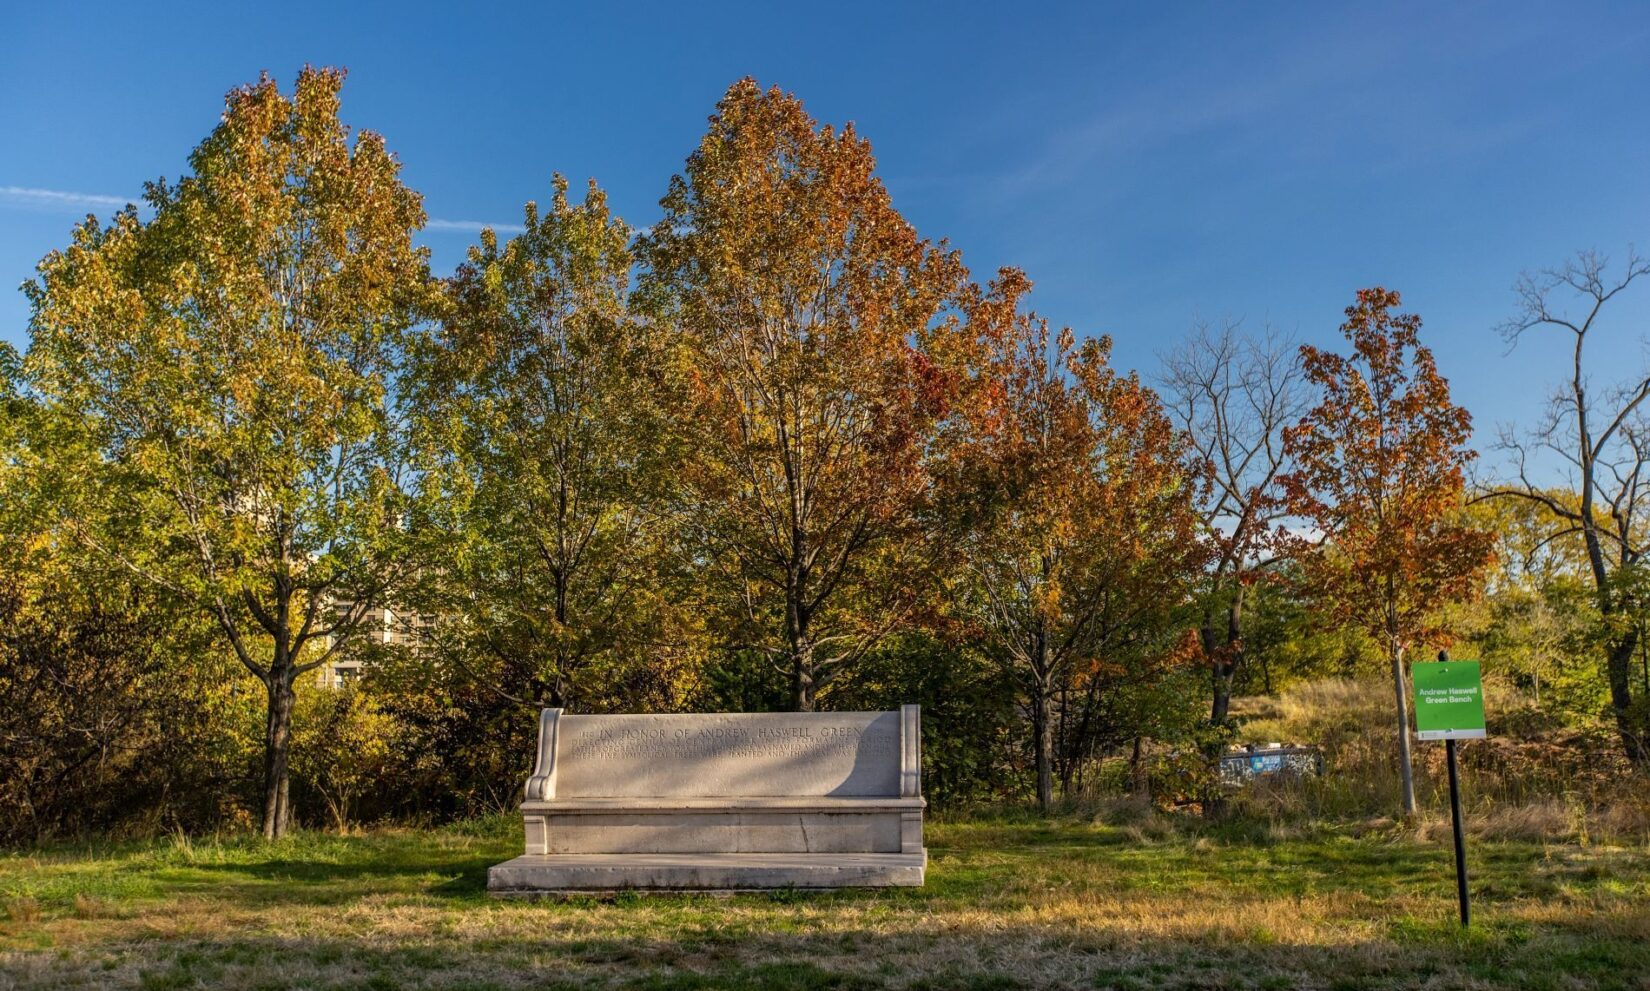 A frontal view of the bench sitting in front of a leafy, fall-colored stand of trees.